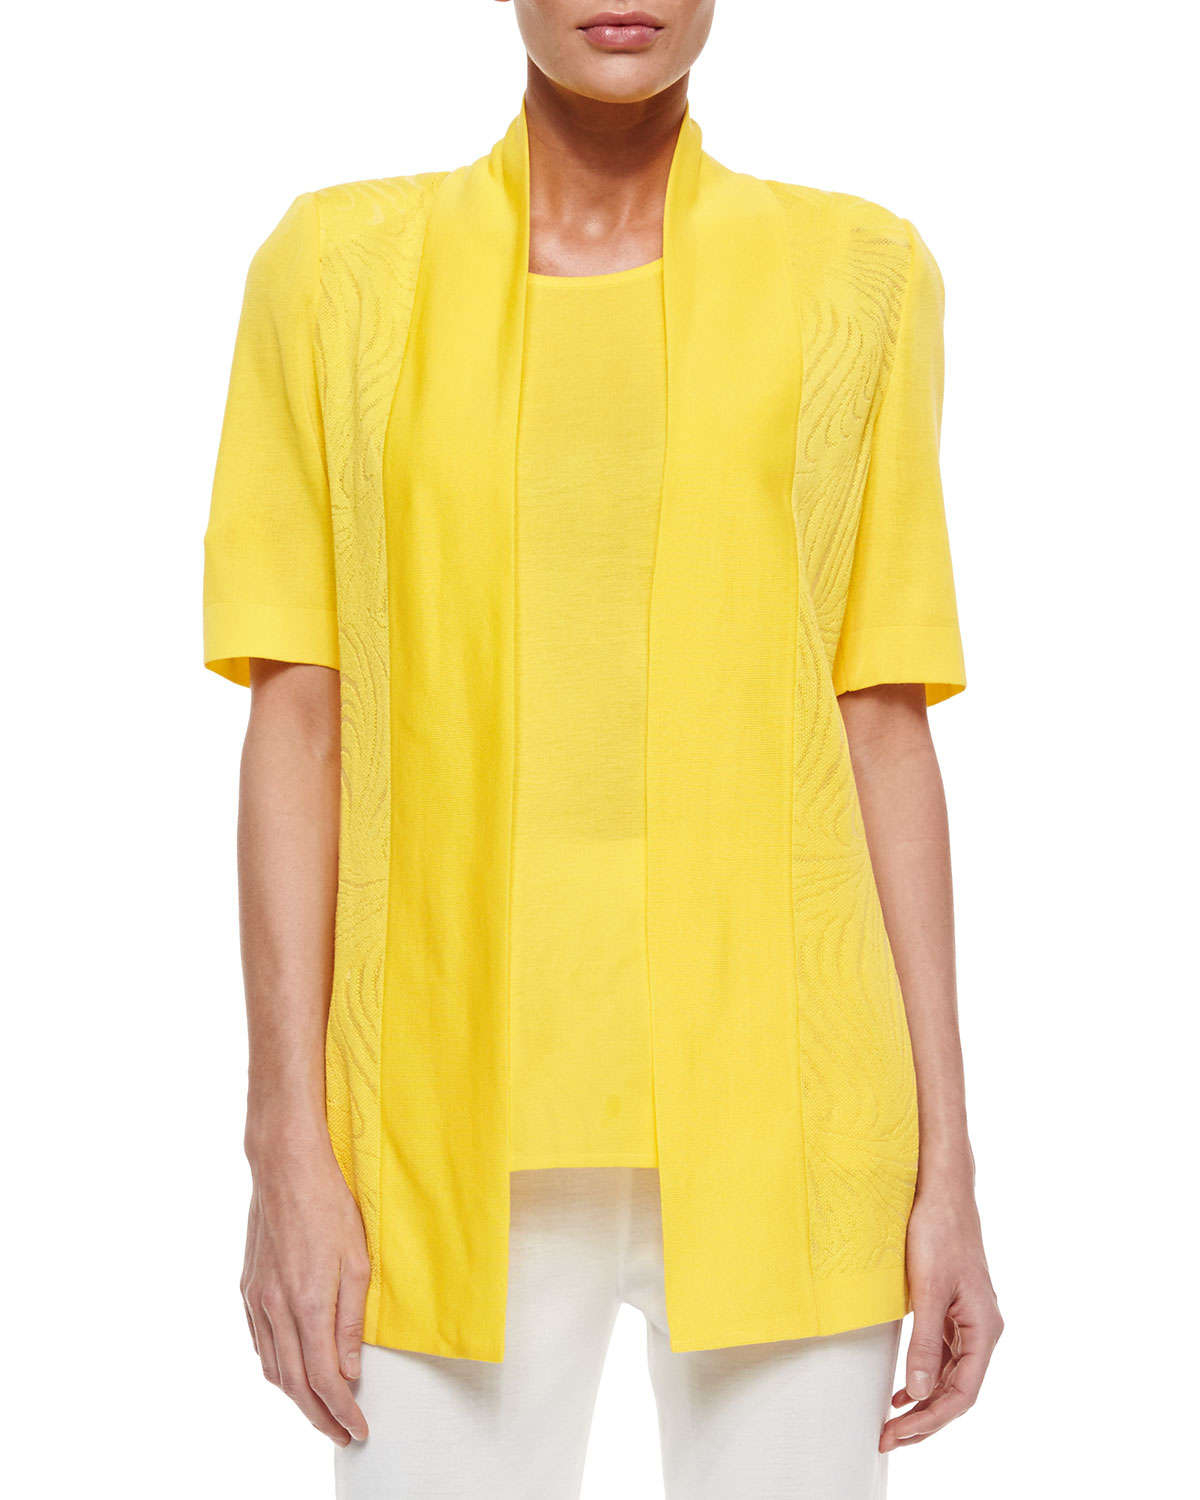 Misook Short-Sleeve Graphic Lines Cardigan in Yellow   Lyst